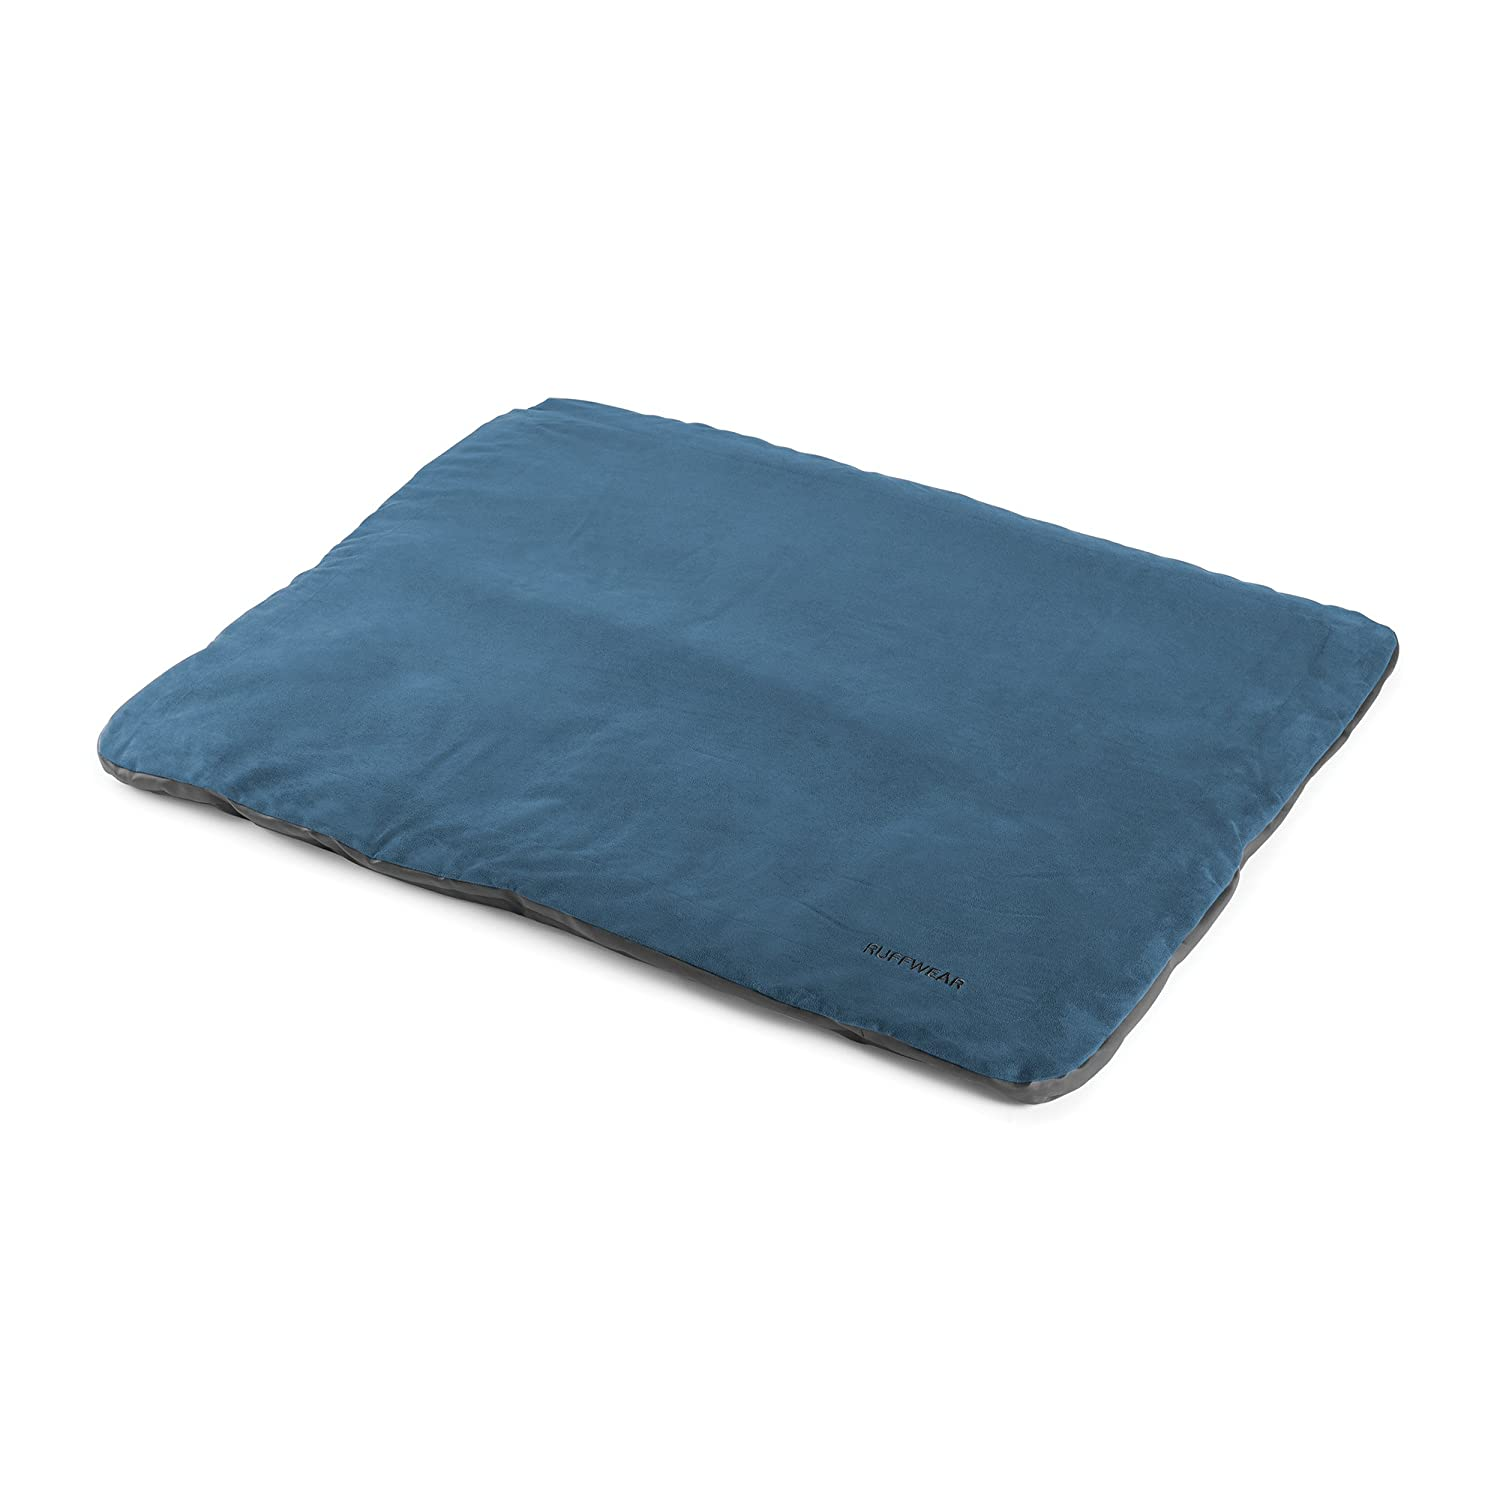 Ruffwear Mt. Bachelor Pad Portable Dog Bed, Overcast bluee, Large